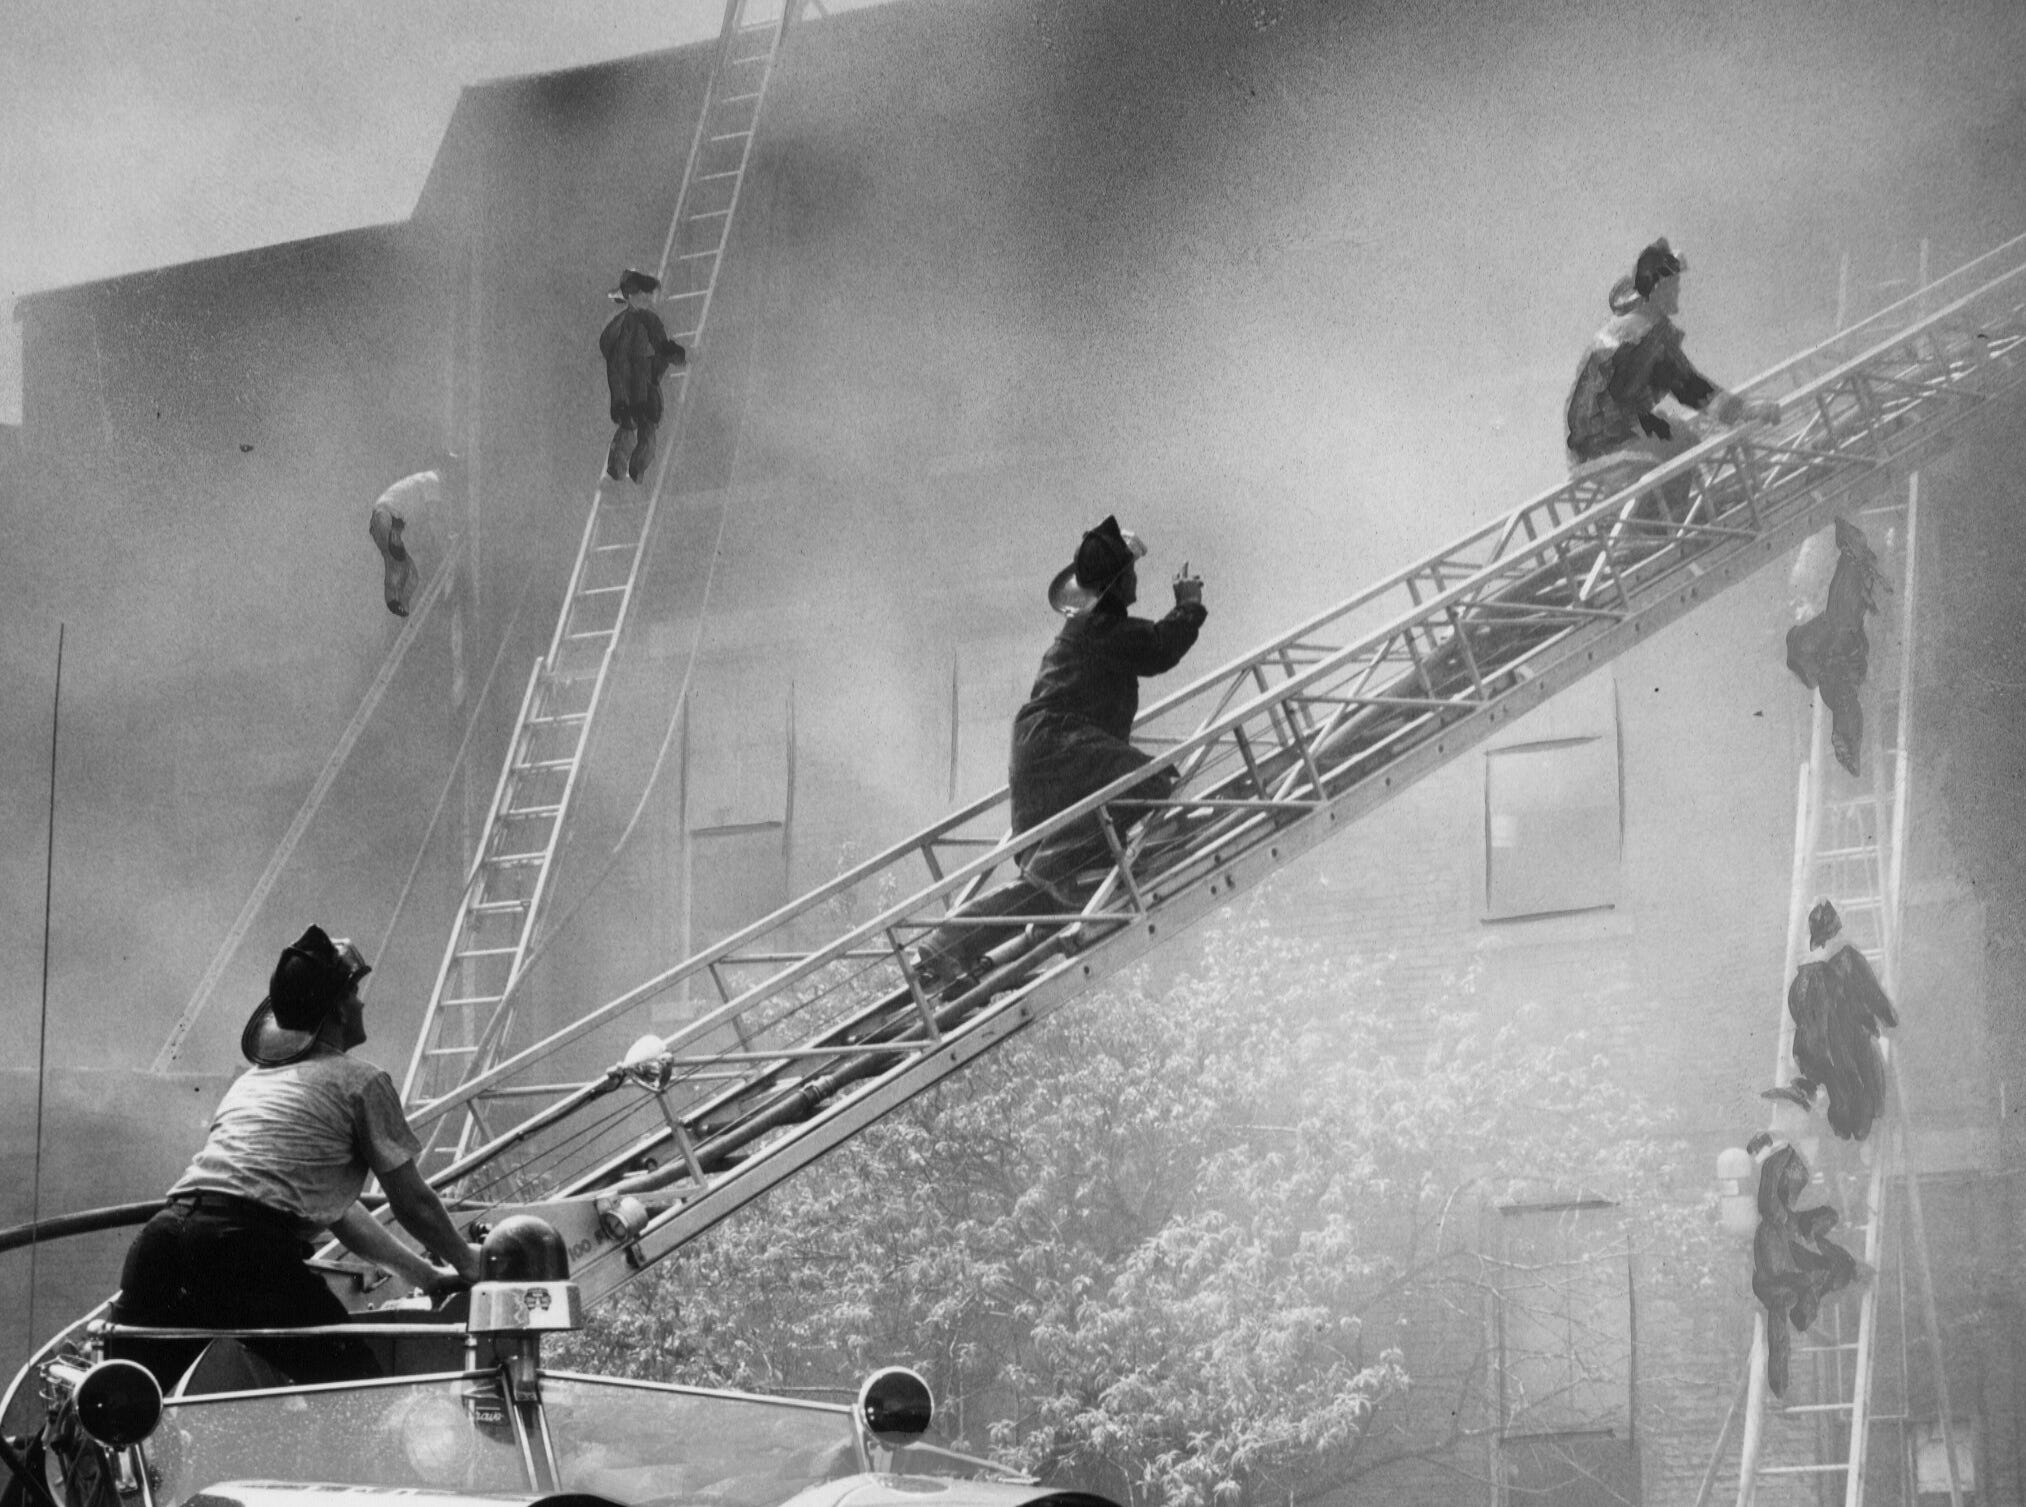 Firemen swarmed to the top of a vacant building, once the Waverly Hotel, to fight a blaze that began in a third-floor room. 